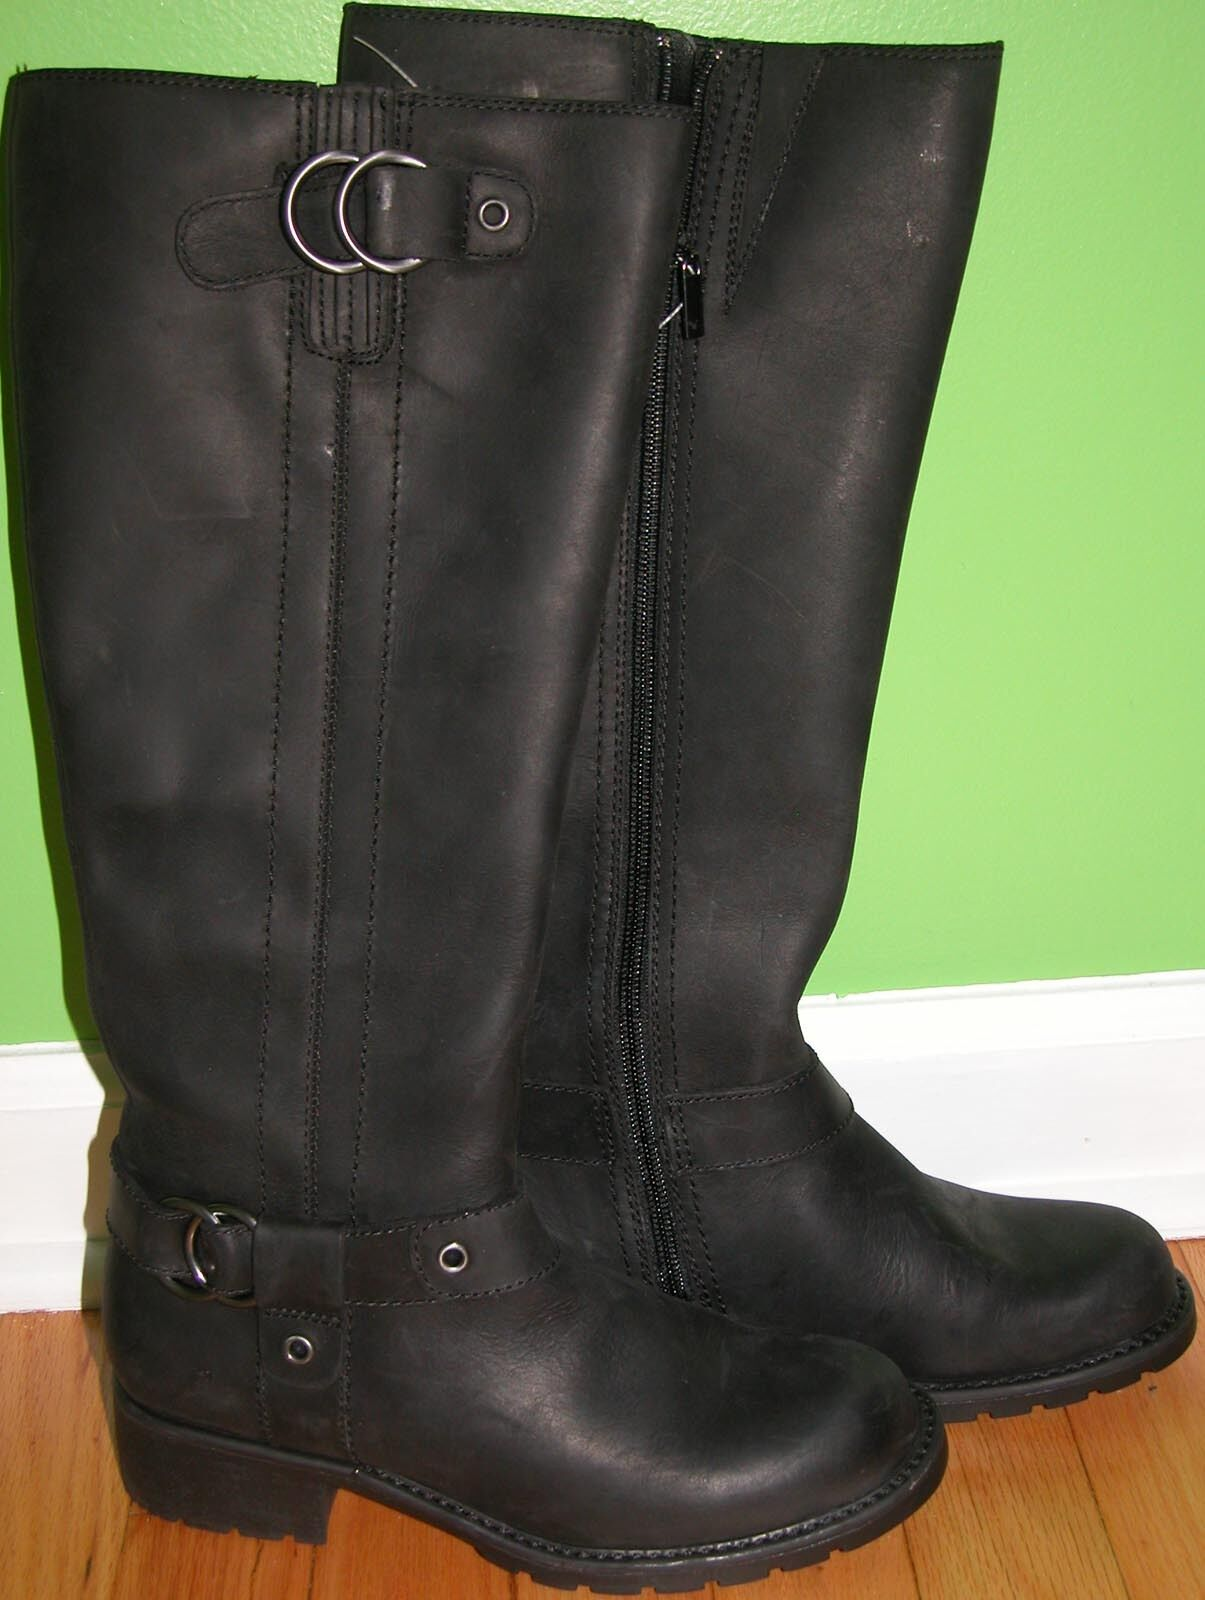 CLARKS 60939 ORINOCCO STEP WOMEN'S LEATHER OILED RIDING BOOTS BLACK SIZE 6.5 M